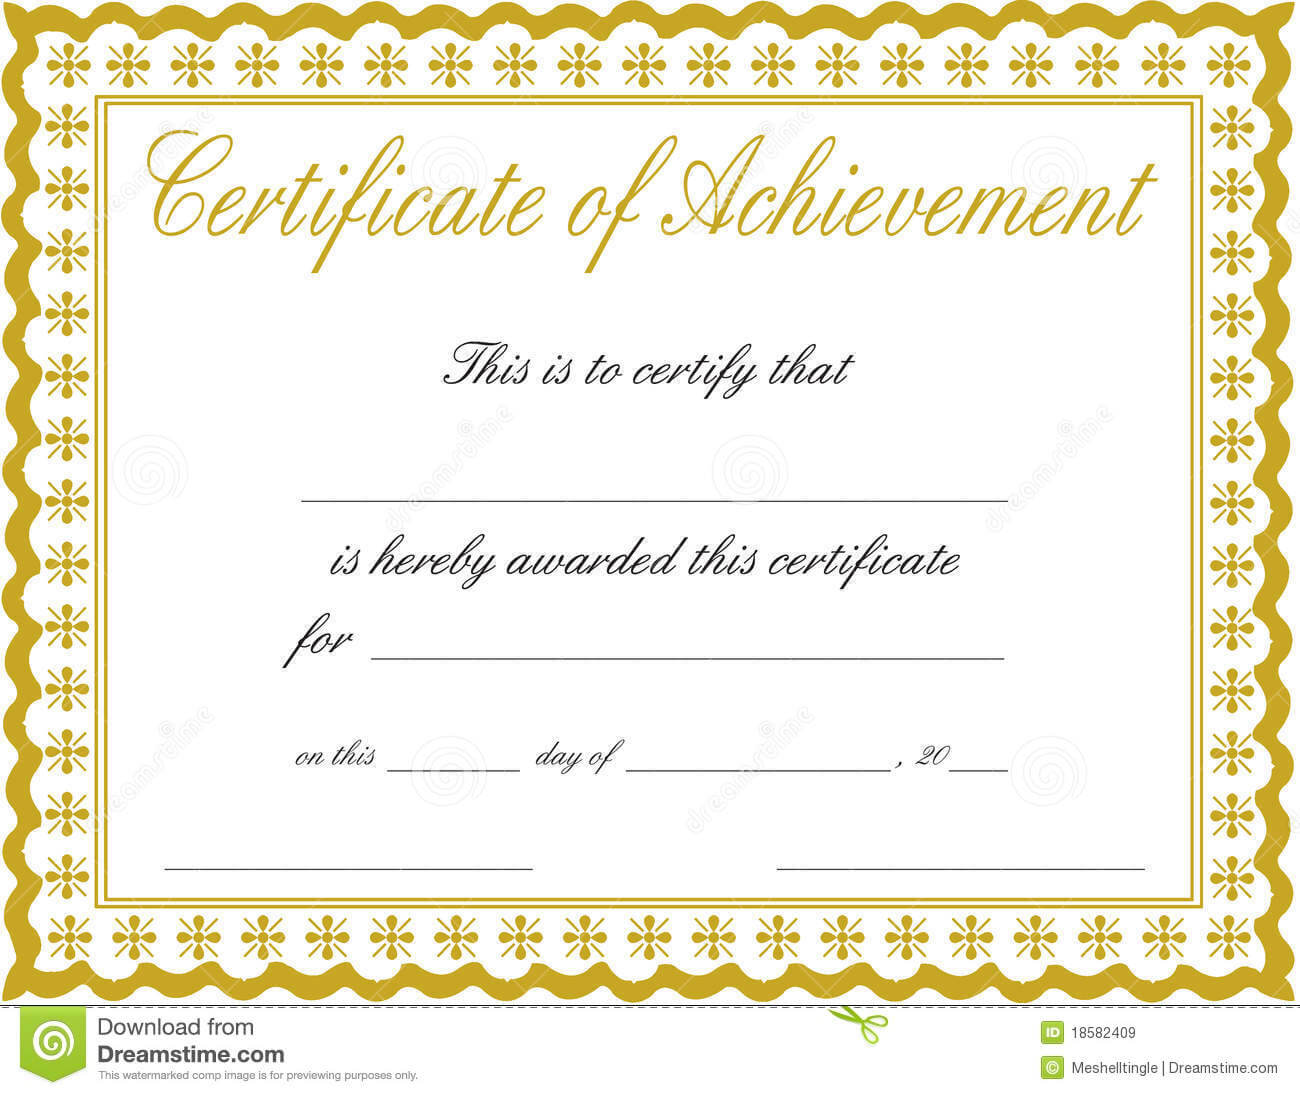 011 Free Printable Certificate Of Achievement Template Blank With Blank Certificate Of Achievement Template